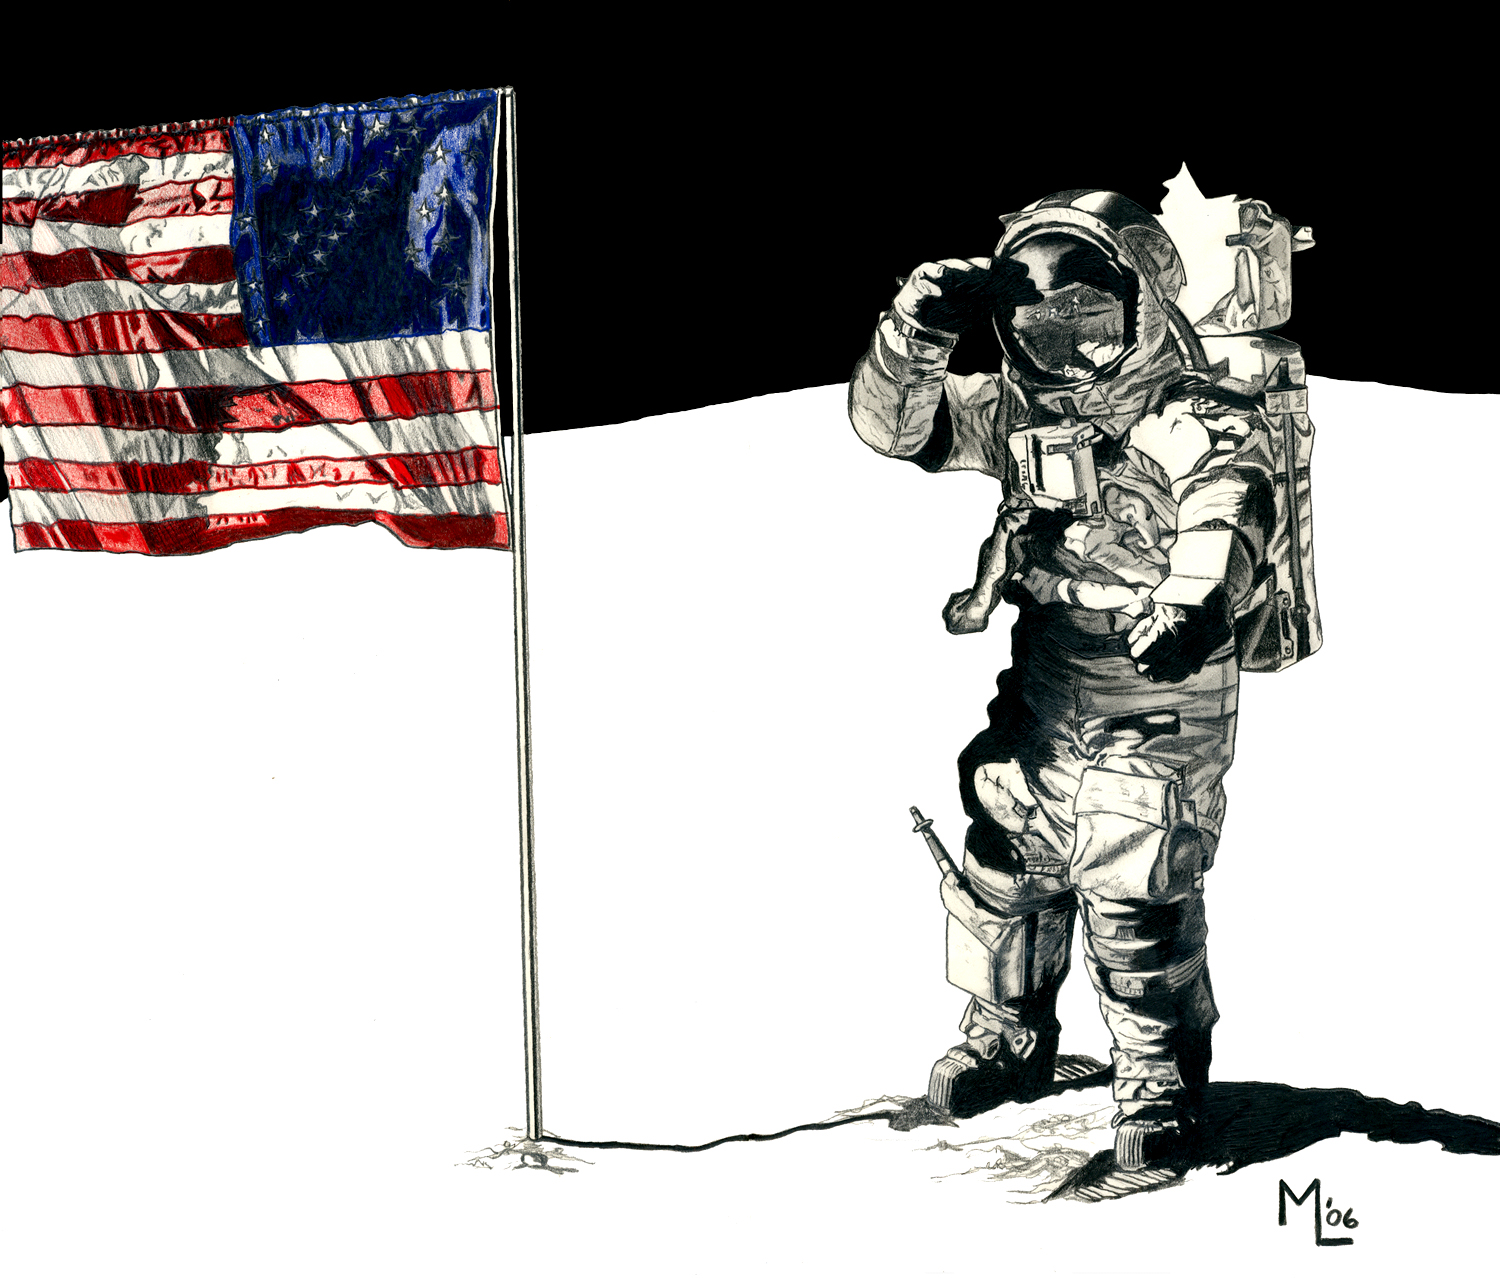 Drawn astronaut Search merklap drawing Search